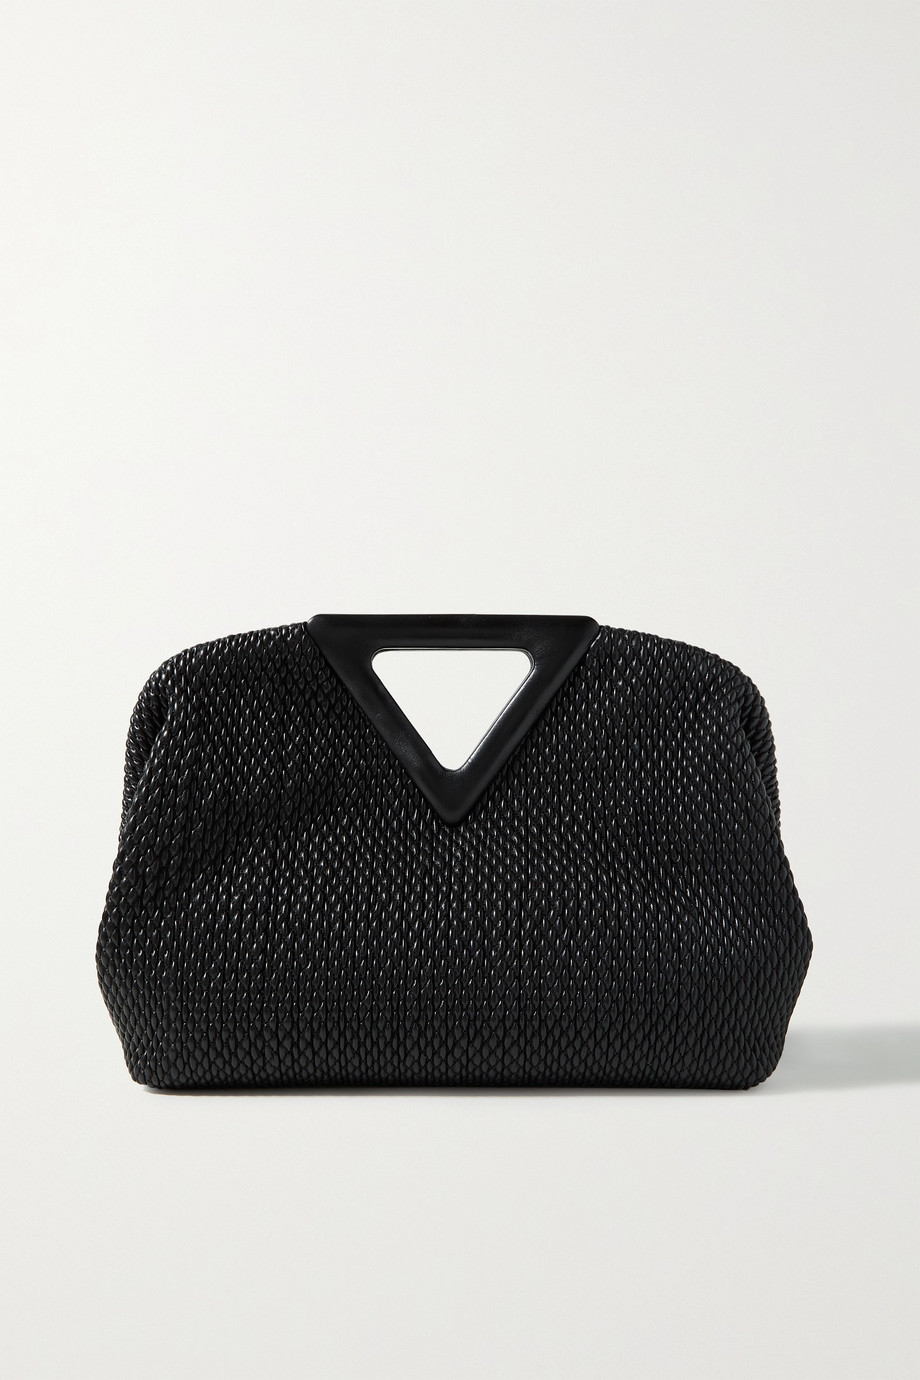 Bottega Veneta Sac à main en cuir matelassé Point Medium